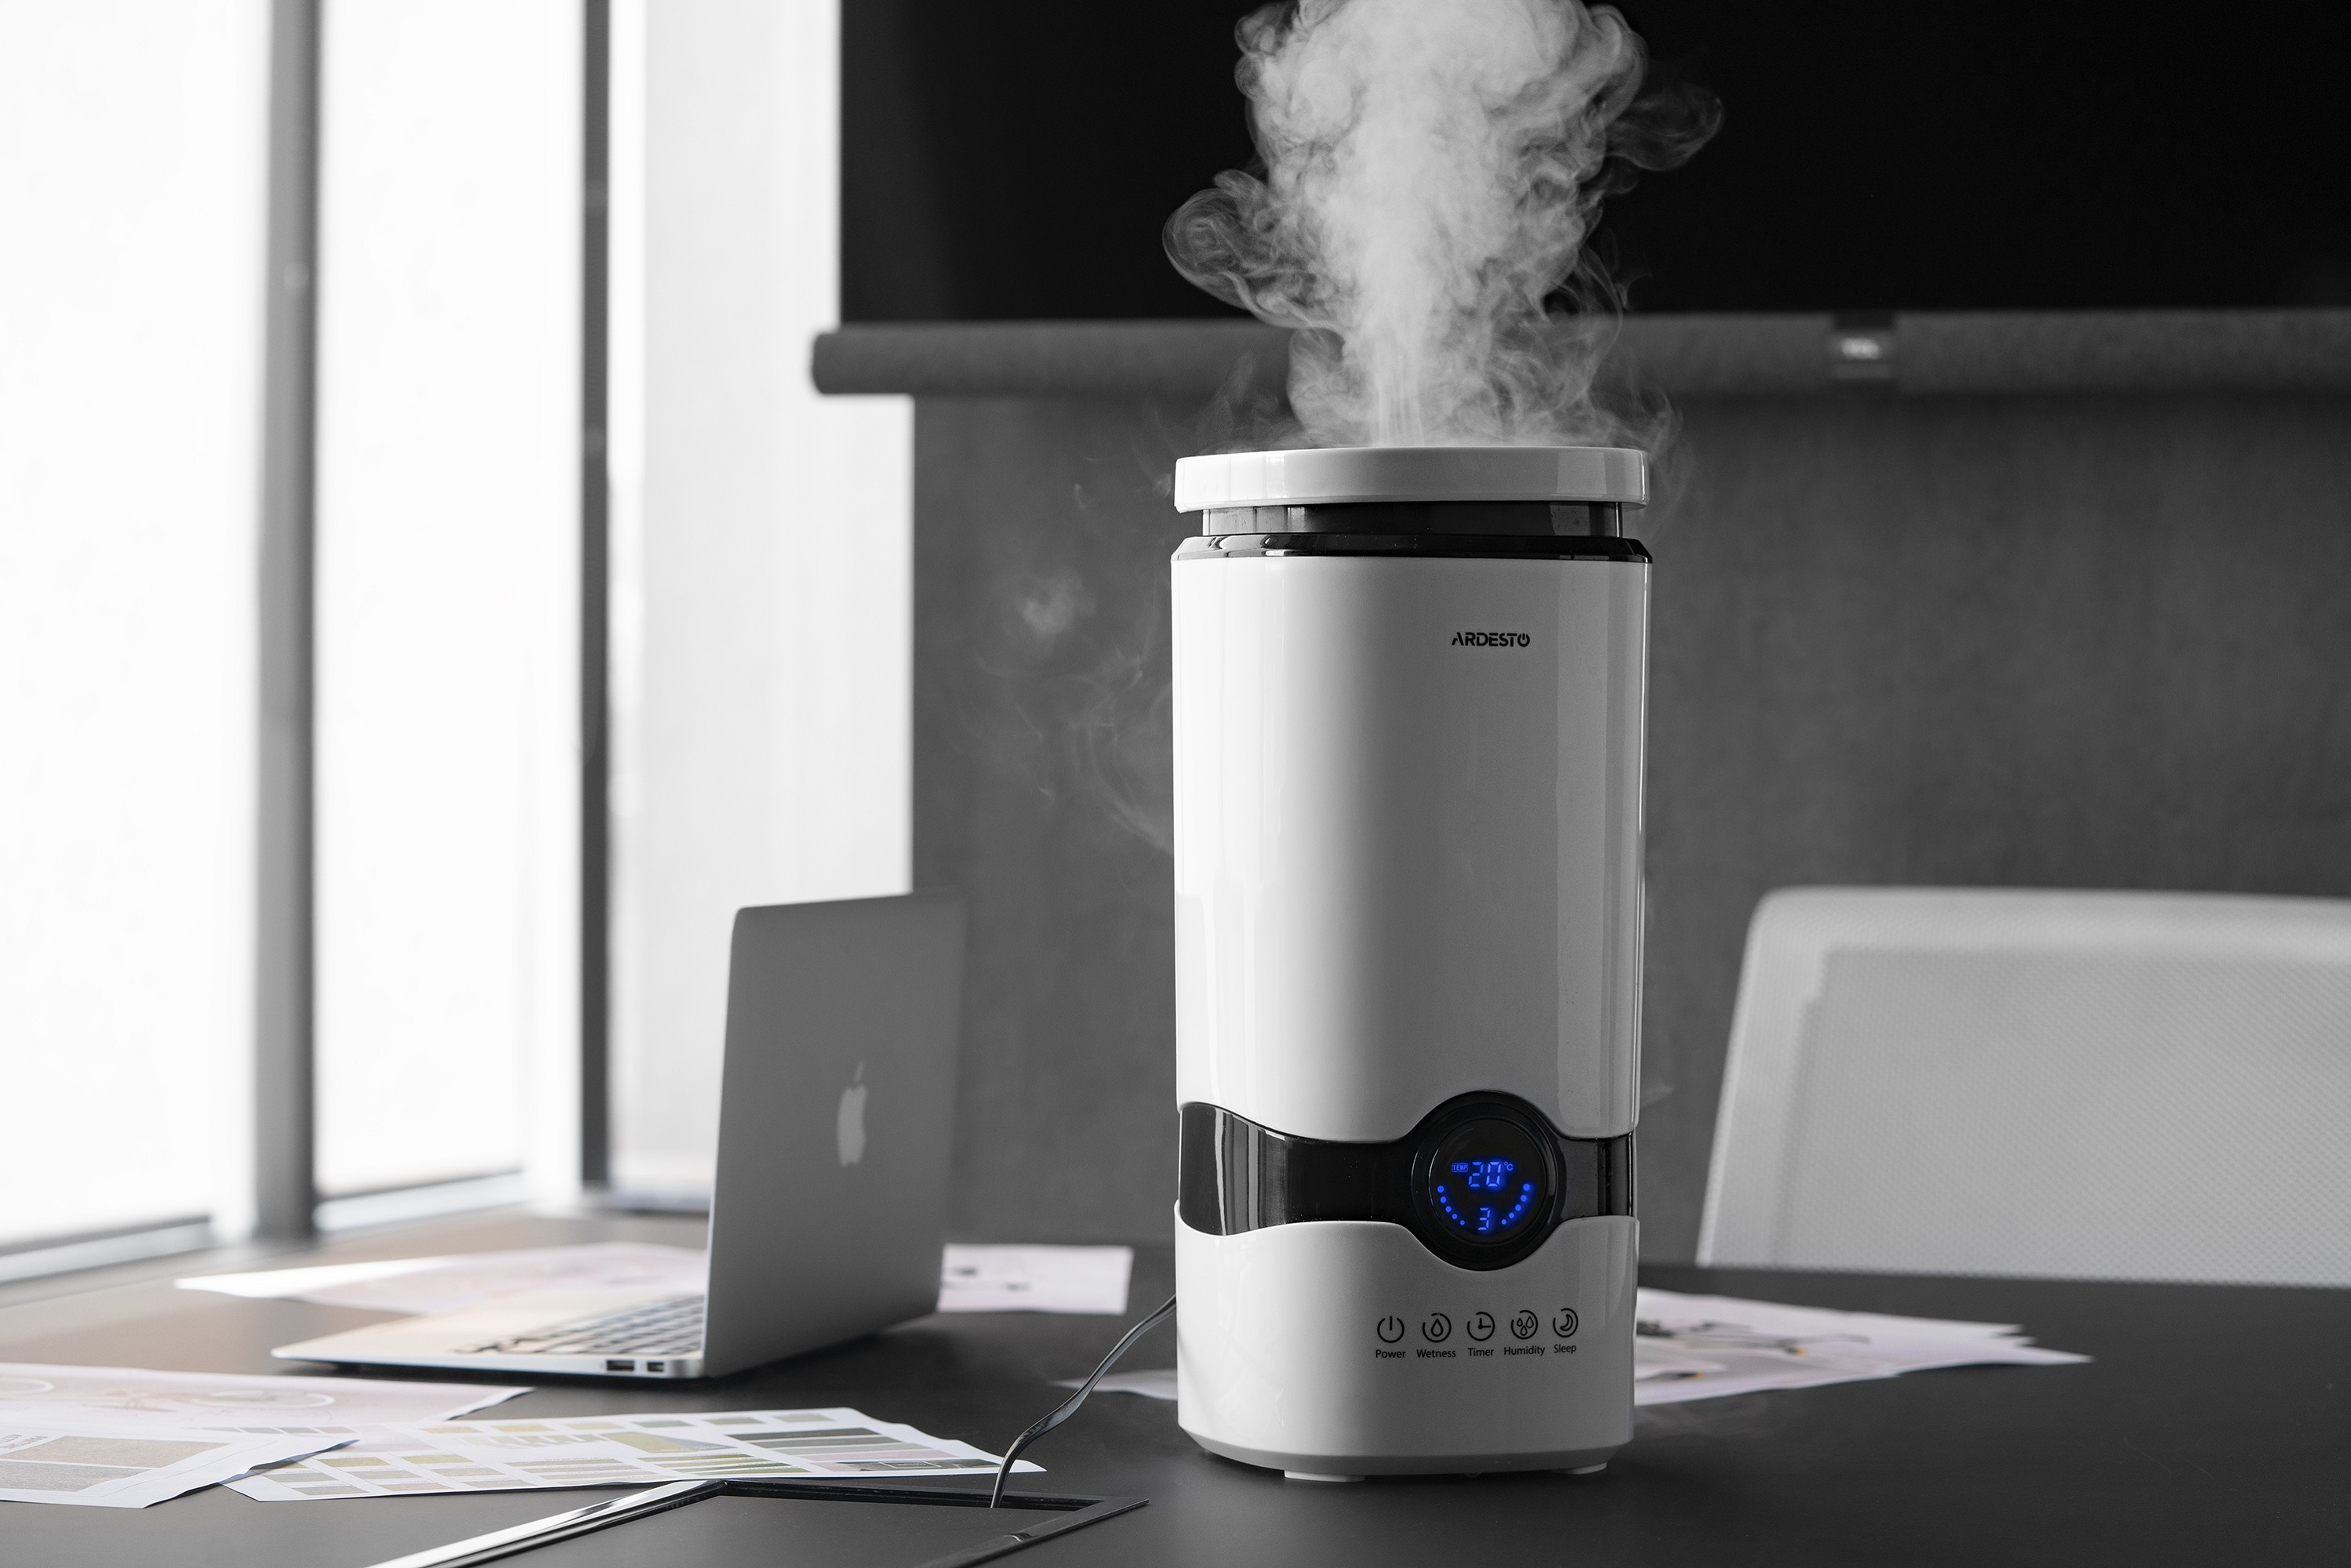 New ultrasonic Ardesto air humidifiers